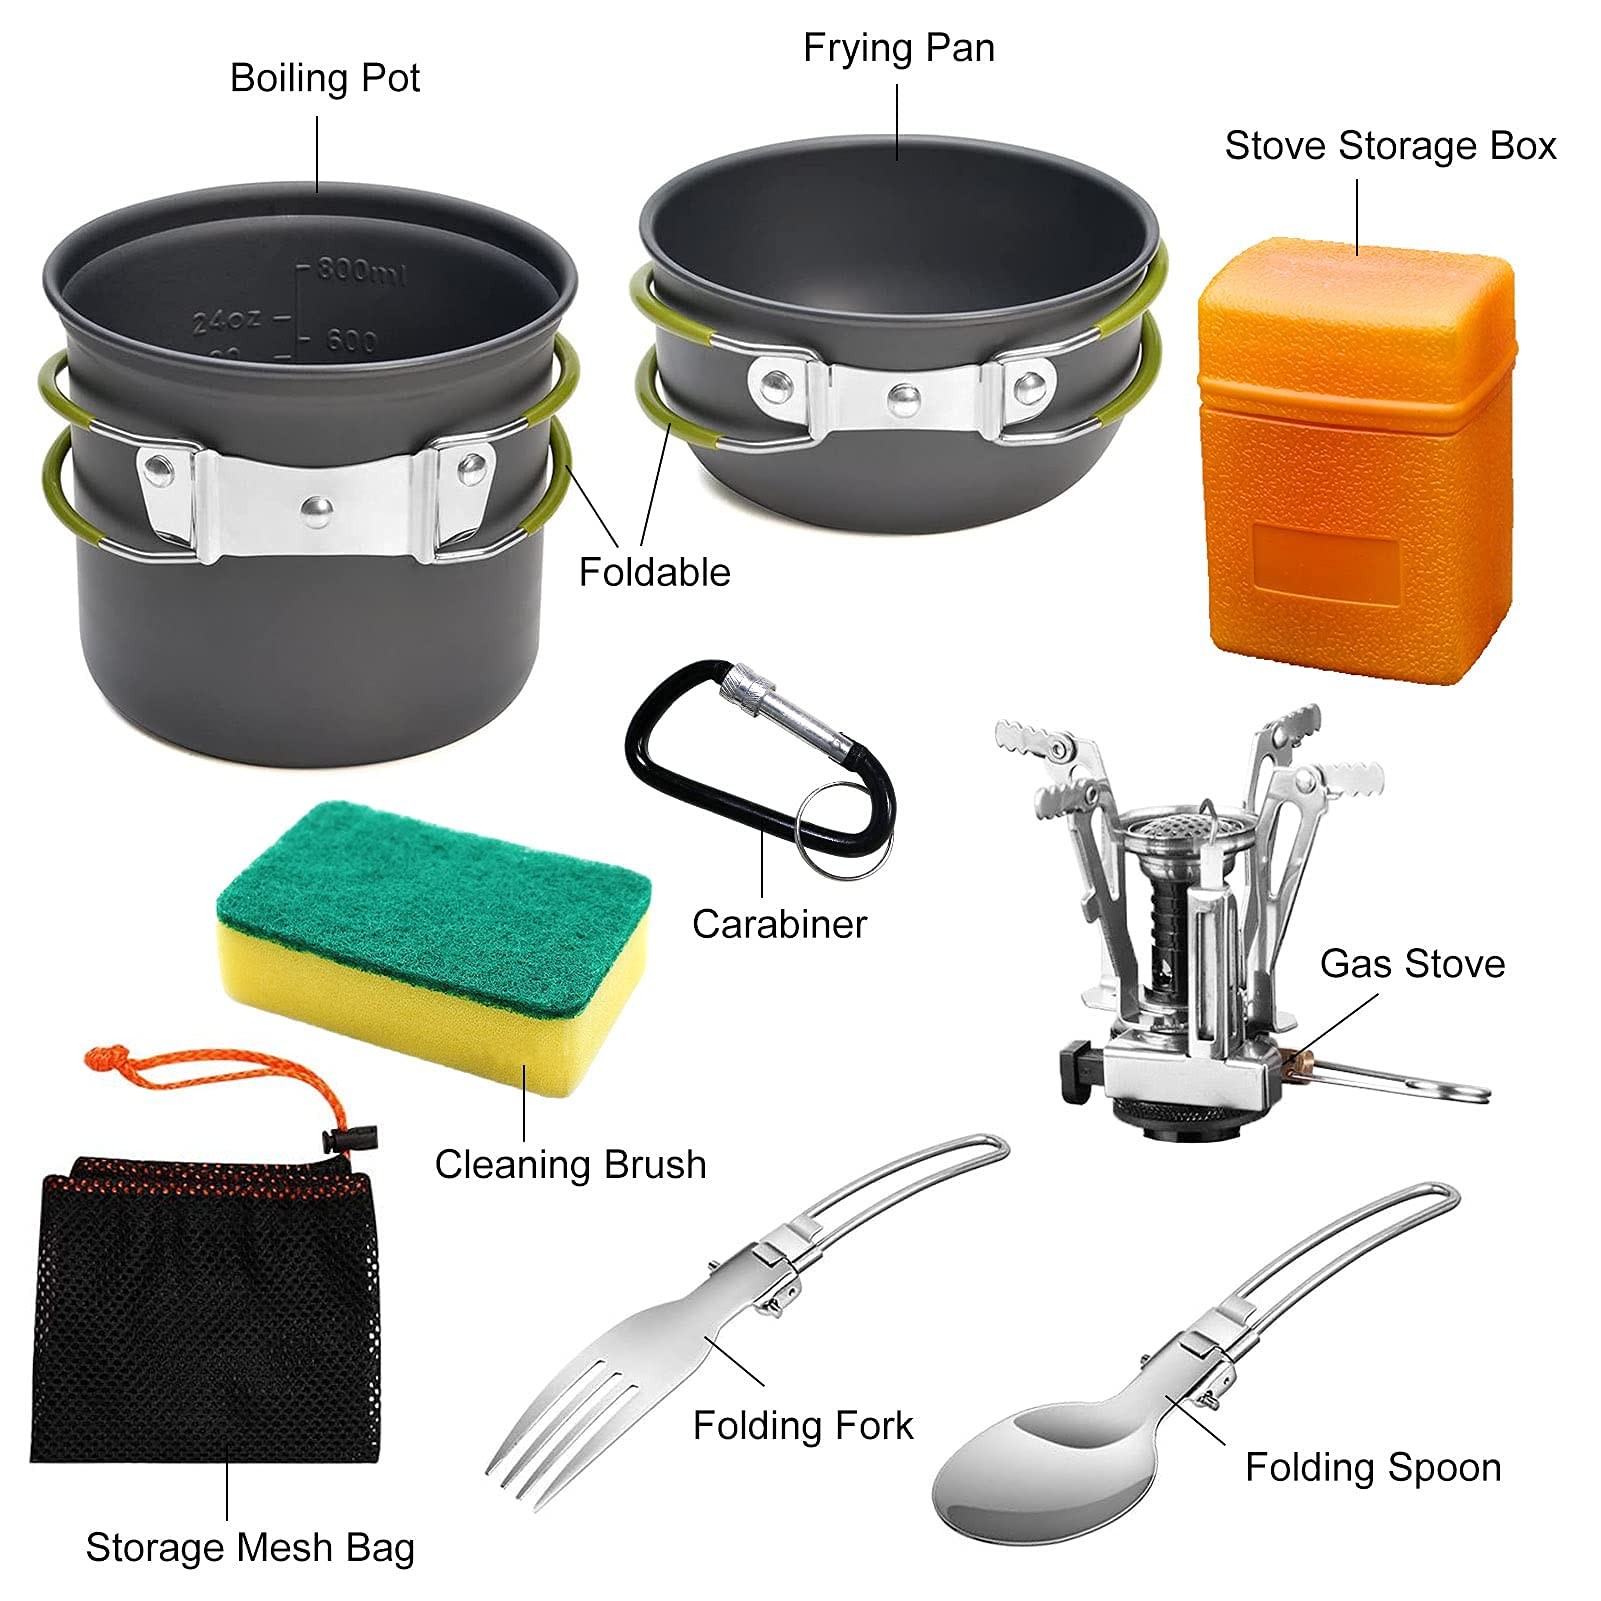 AUTOPkio Camping Cooking Set, Outdoor Camping Pans Pots and Stove - Non Stick Folding Cookware Kit for BBQ Picnic Hiking Backpacking Travel 1-2 Person Use